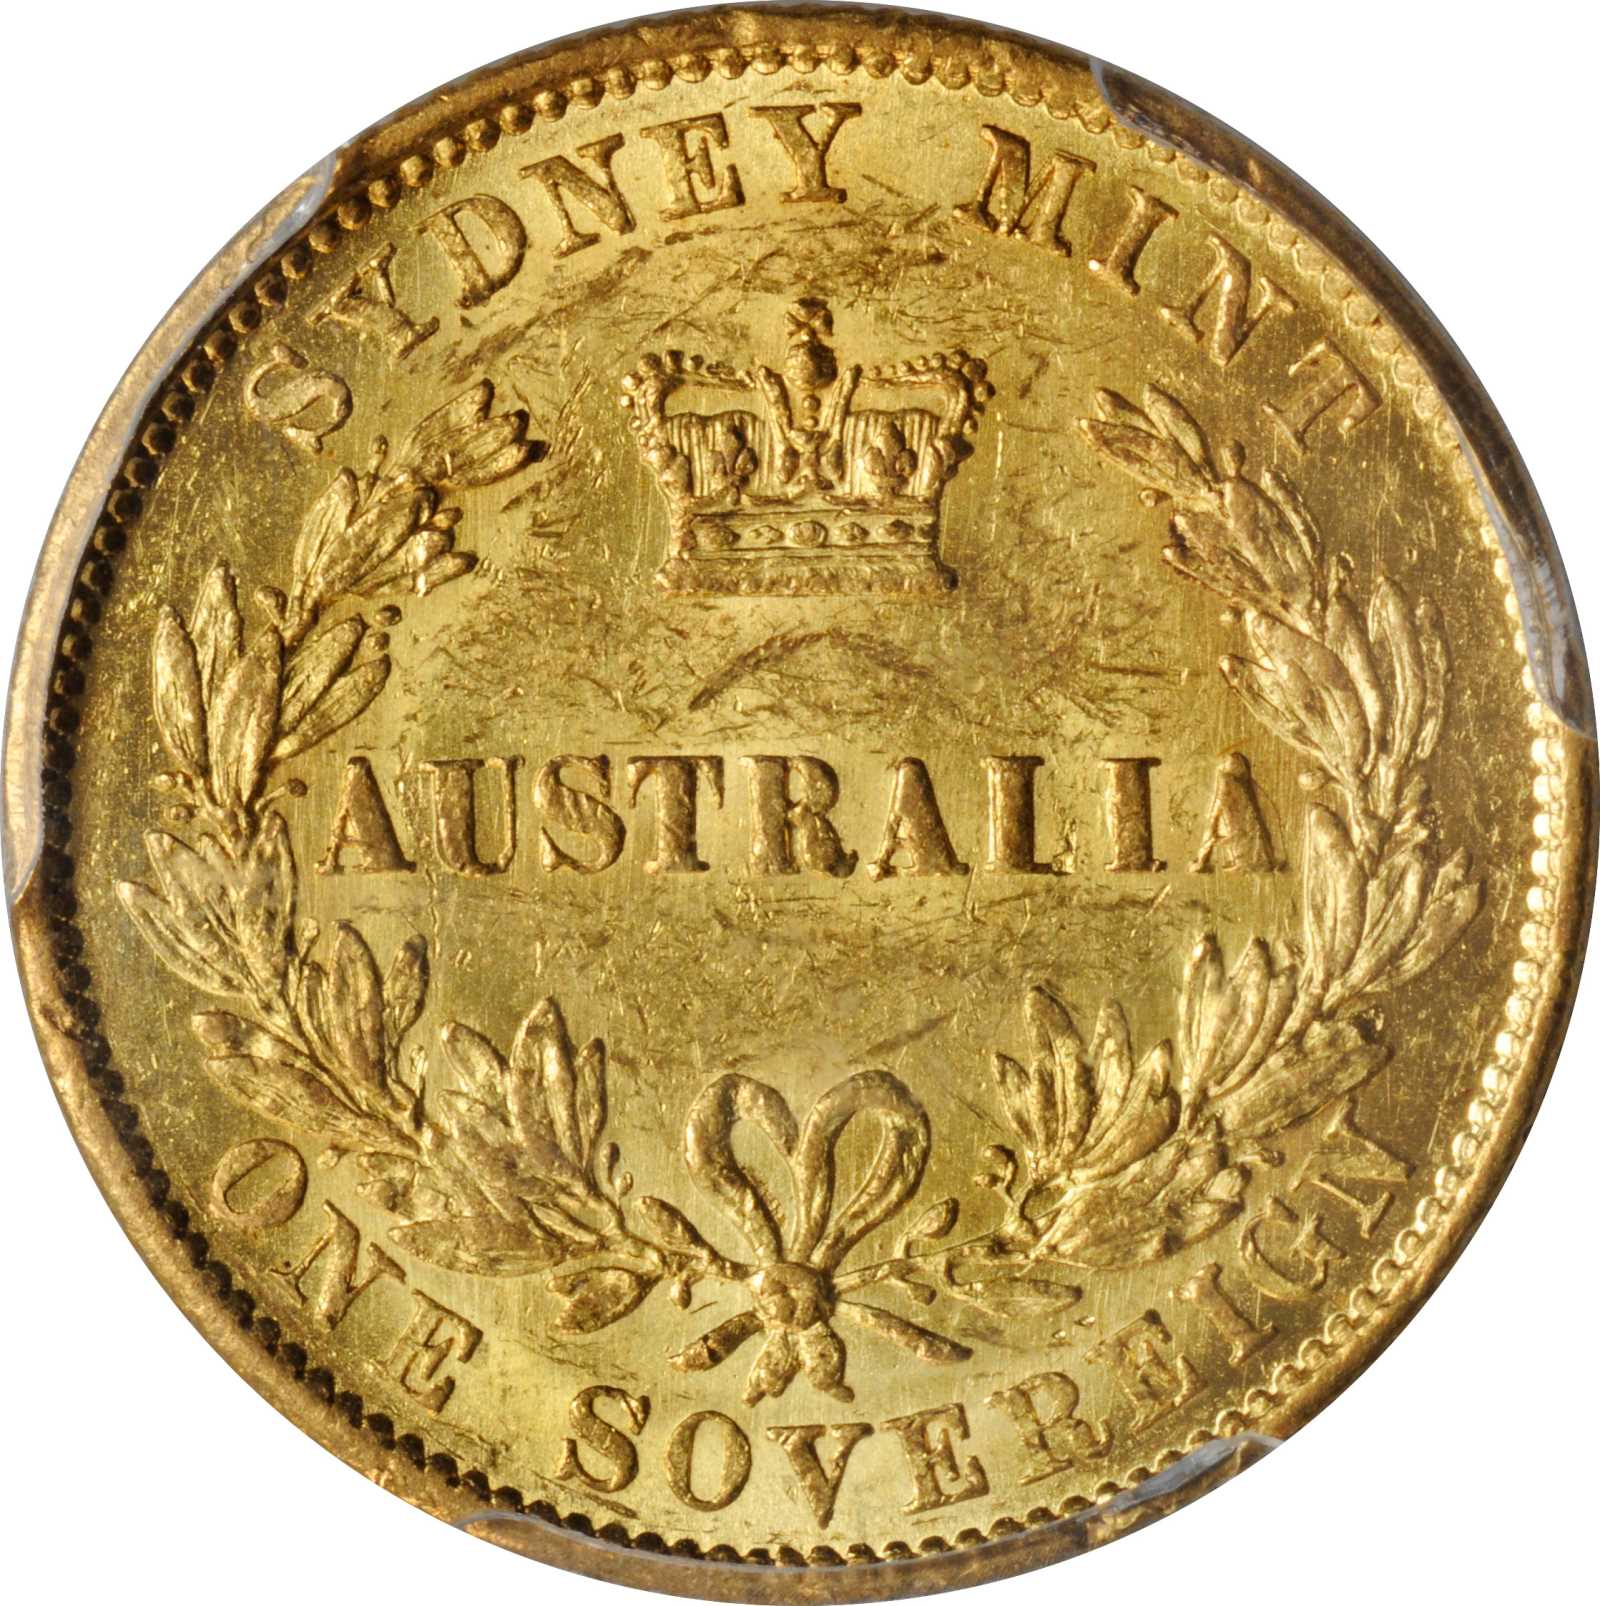 Australian Sovereign: Photo Australia 1858-S sovereign